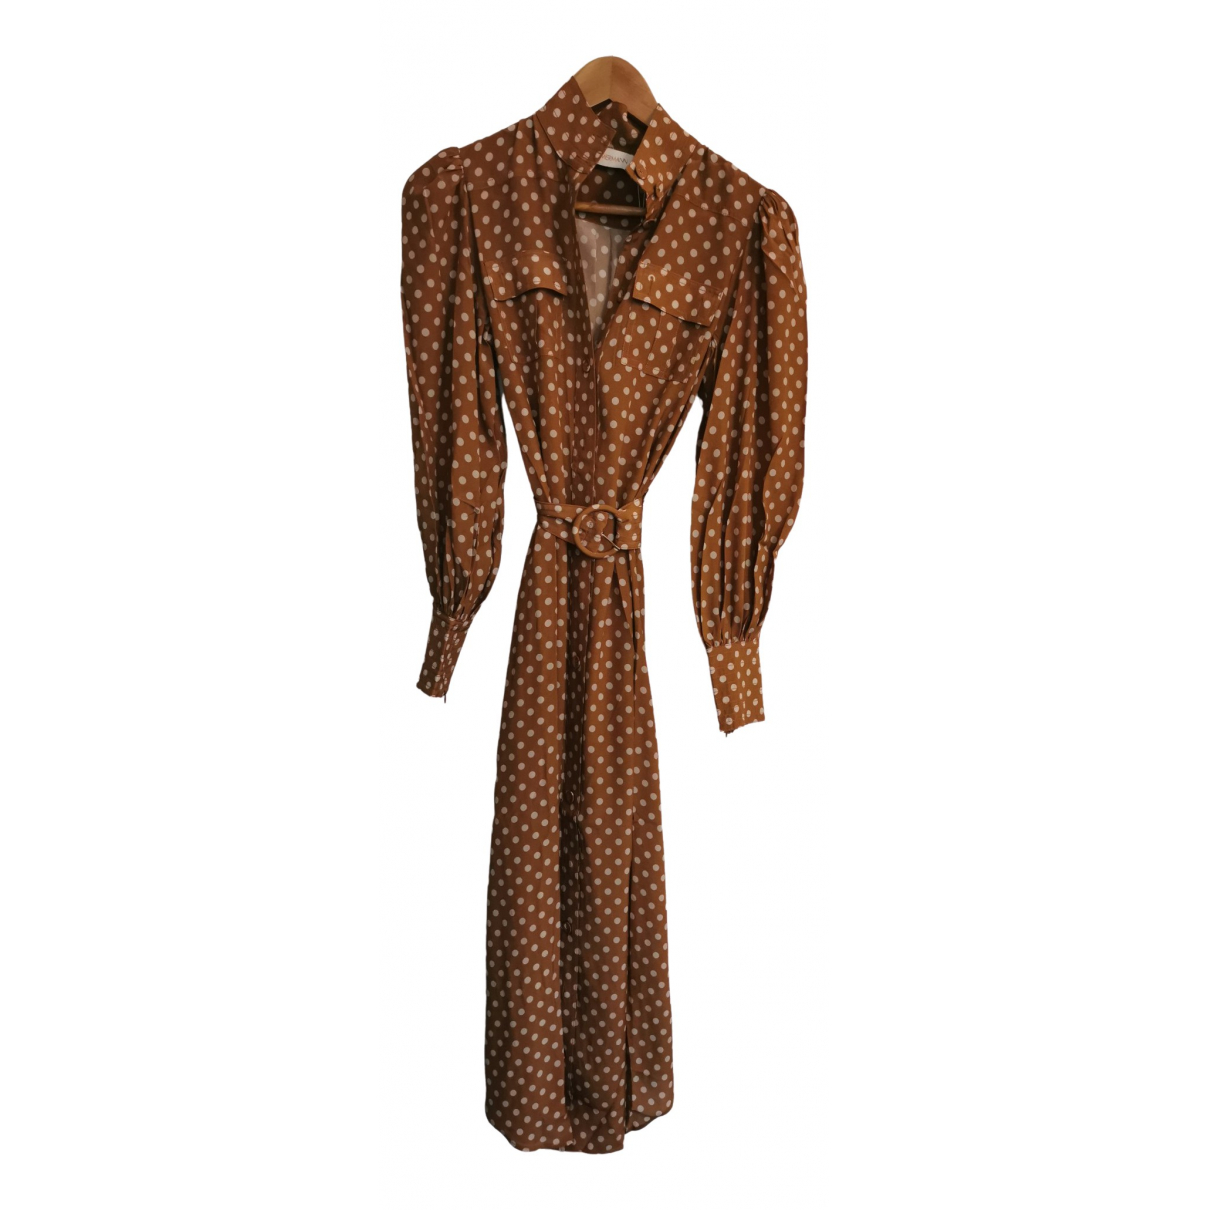 Zimmermann \N Brown Silk dress for Women 0 0-5